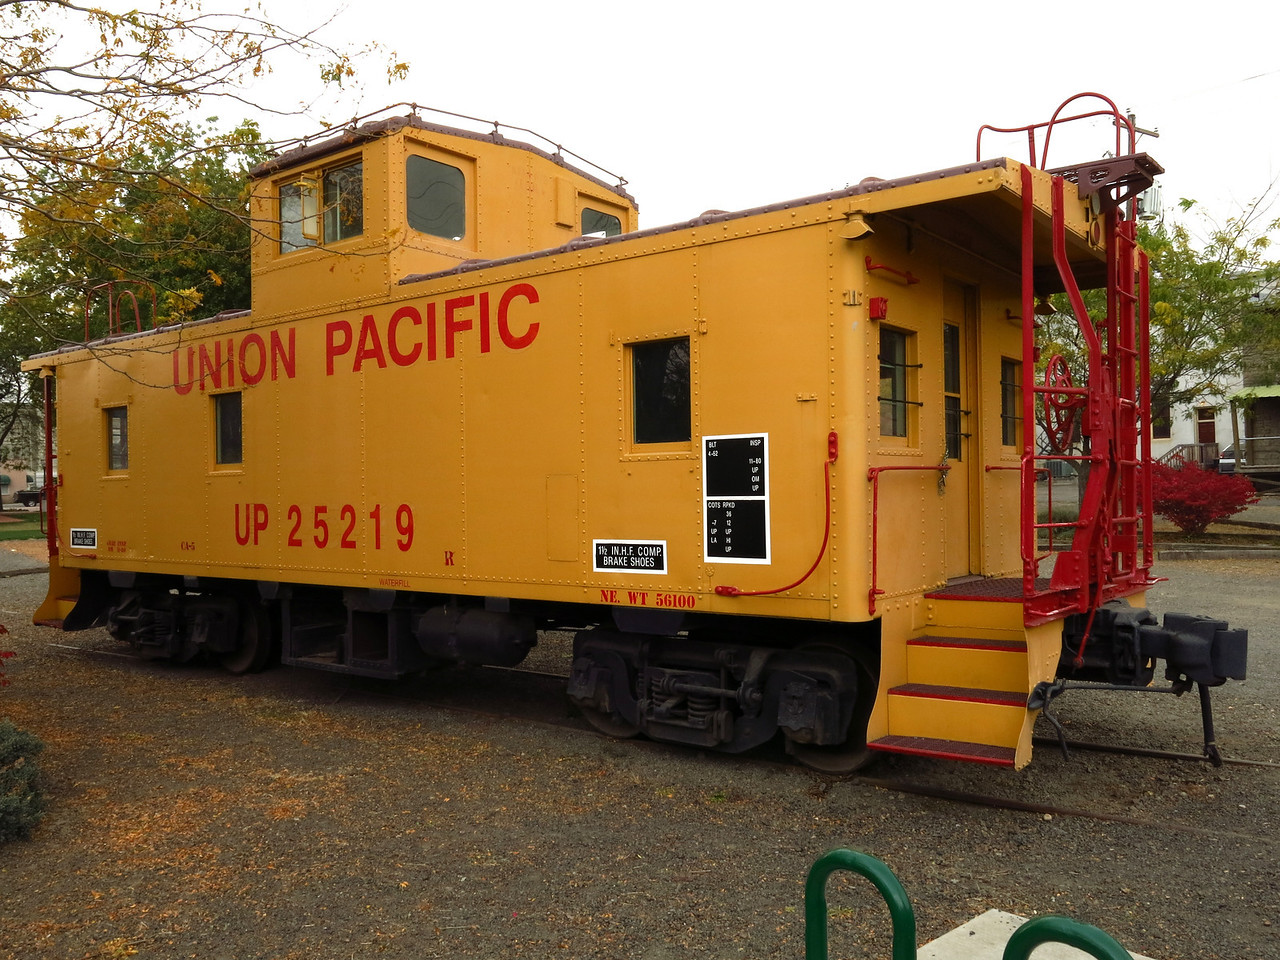 This Union Pacific caboose stands next to the Historic Dayton Depot.